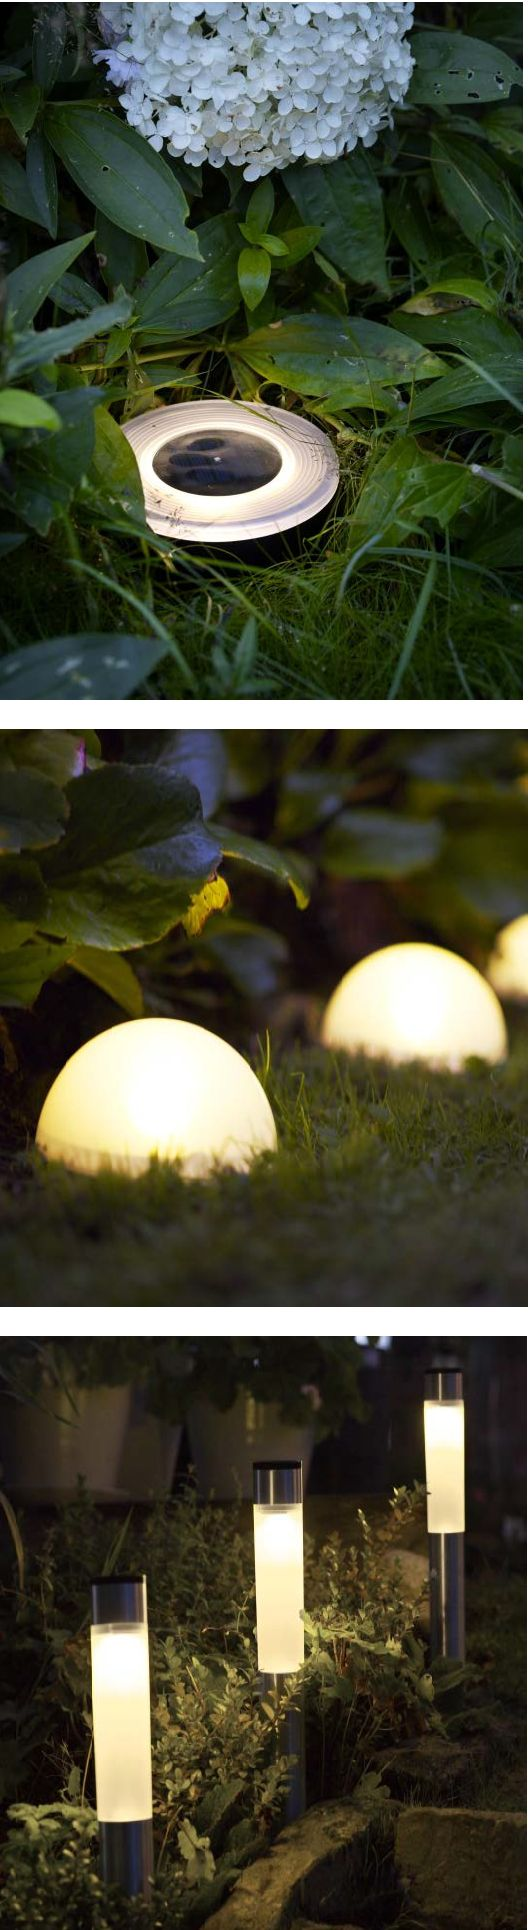 outdoor solar lighting ideas. best 25 outdoor solar lighting ideas on pinterest lamp bases decking base and how to be clever a